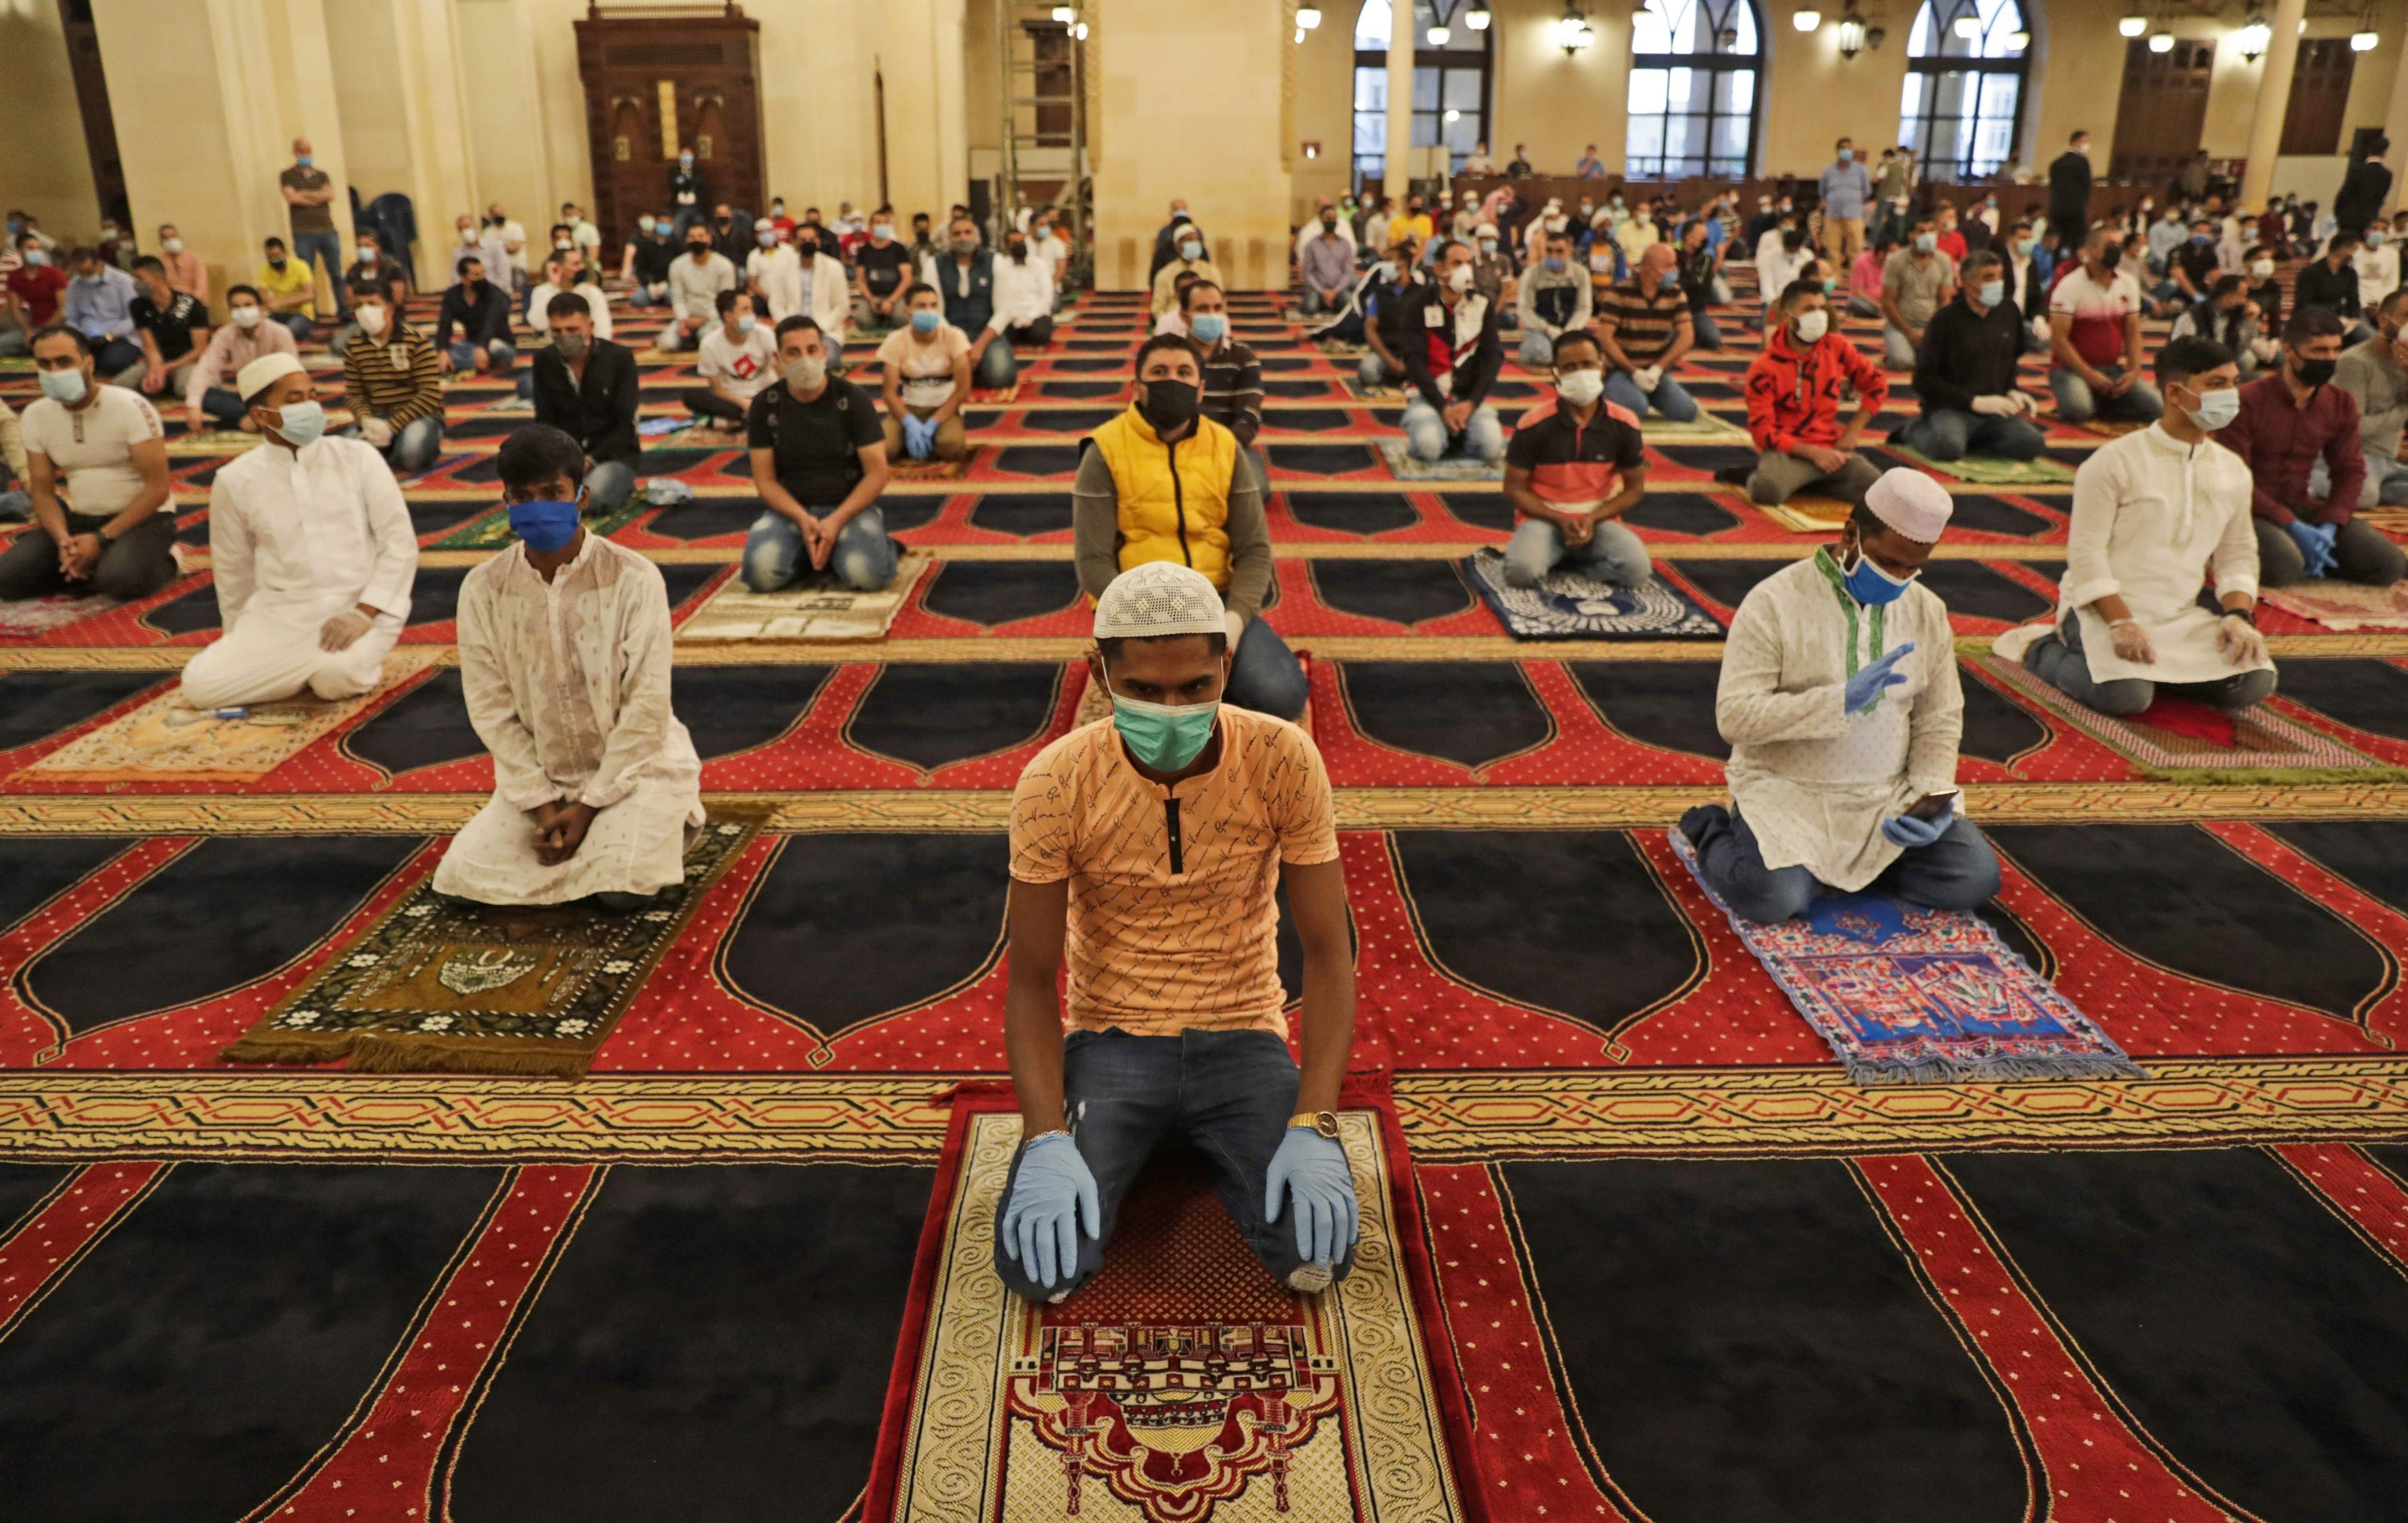 Muslims worshippers take part in a morning prayer to celebrate the Eid al-Fitr holiday while wearing protective masks and maintaining social distancing due to the COVID-19 pandemic, at Mohammed al-Amin Mosque, Beirut, Lebanon, May 24, 2020. (AFP Photo)